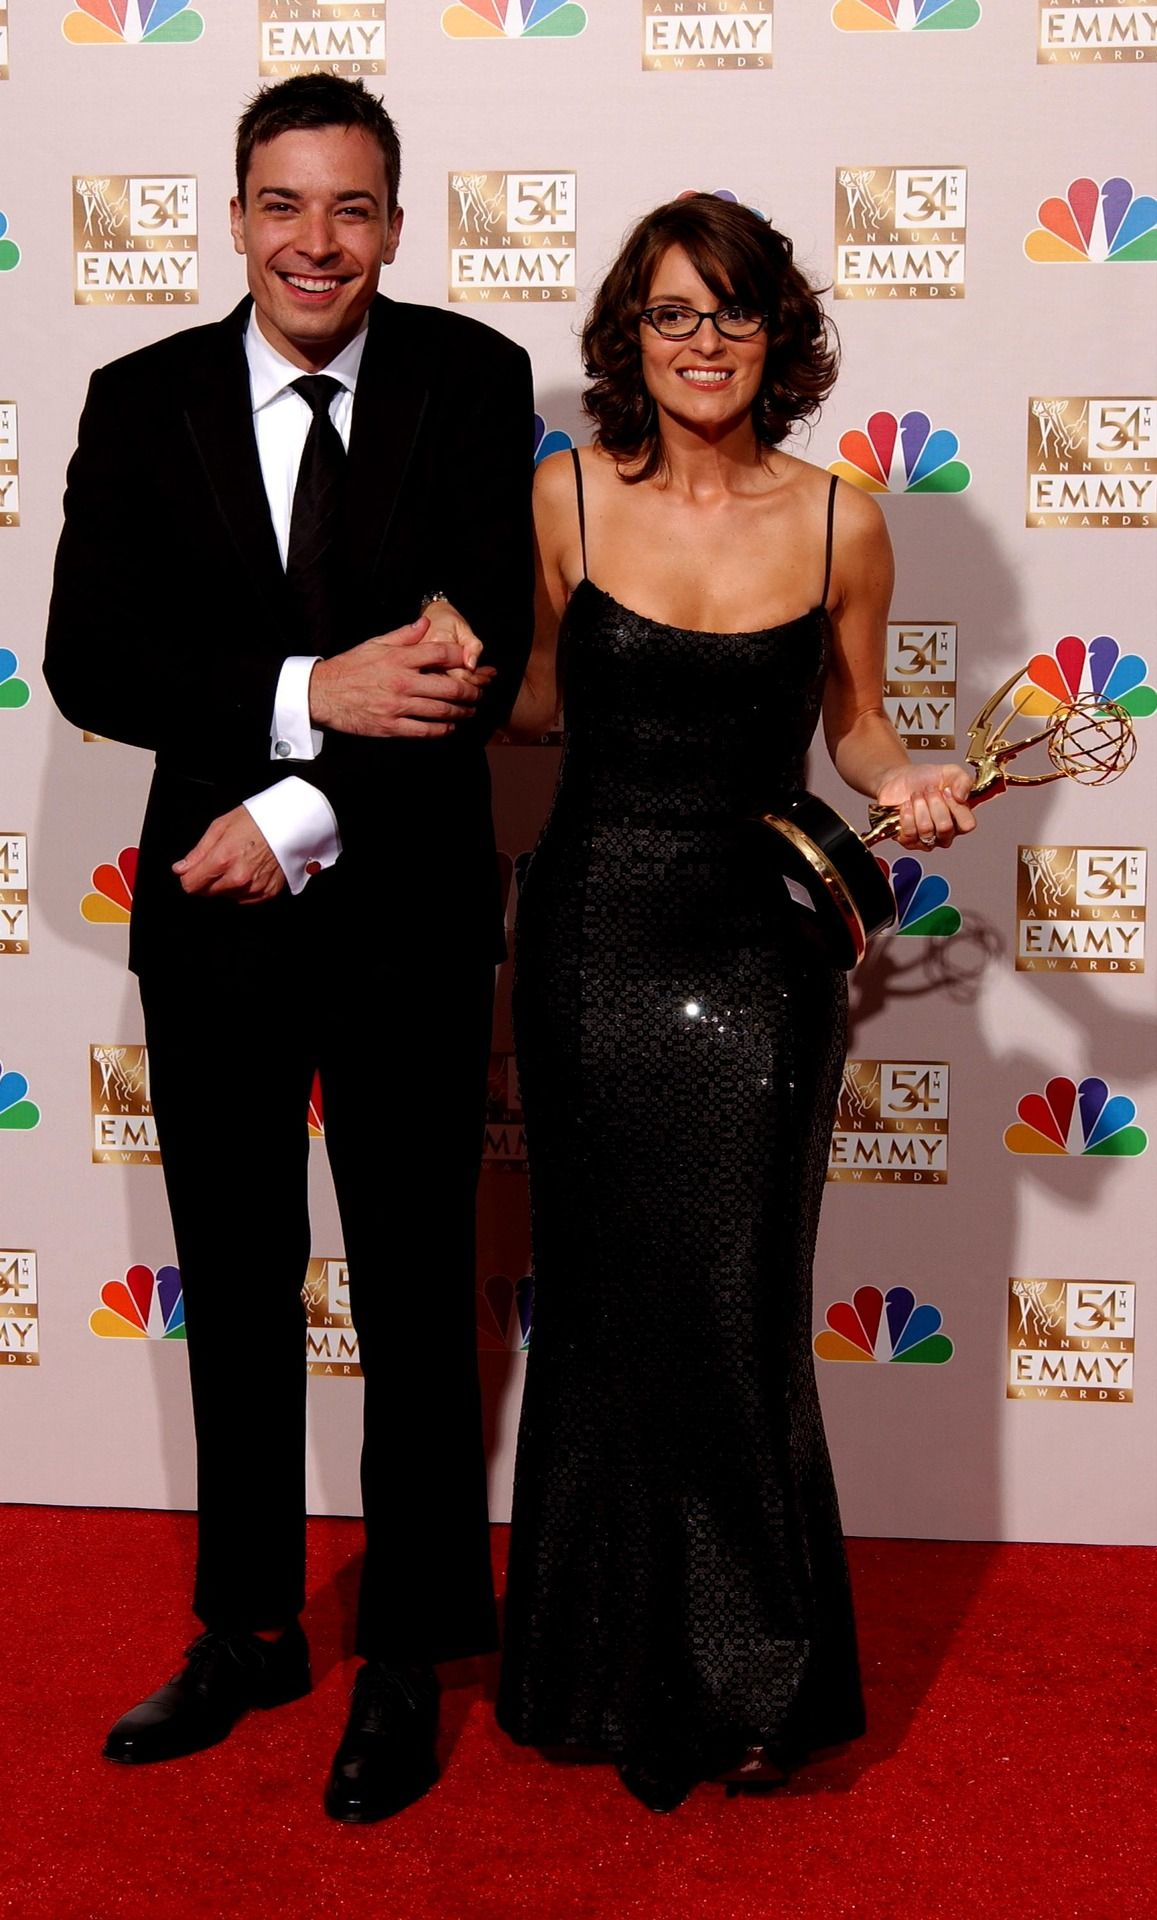 jimmy fallon pictures of his family | jimmy fallon 2012 emmys